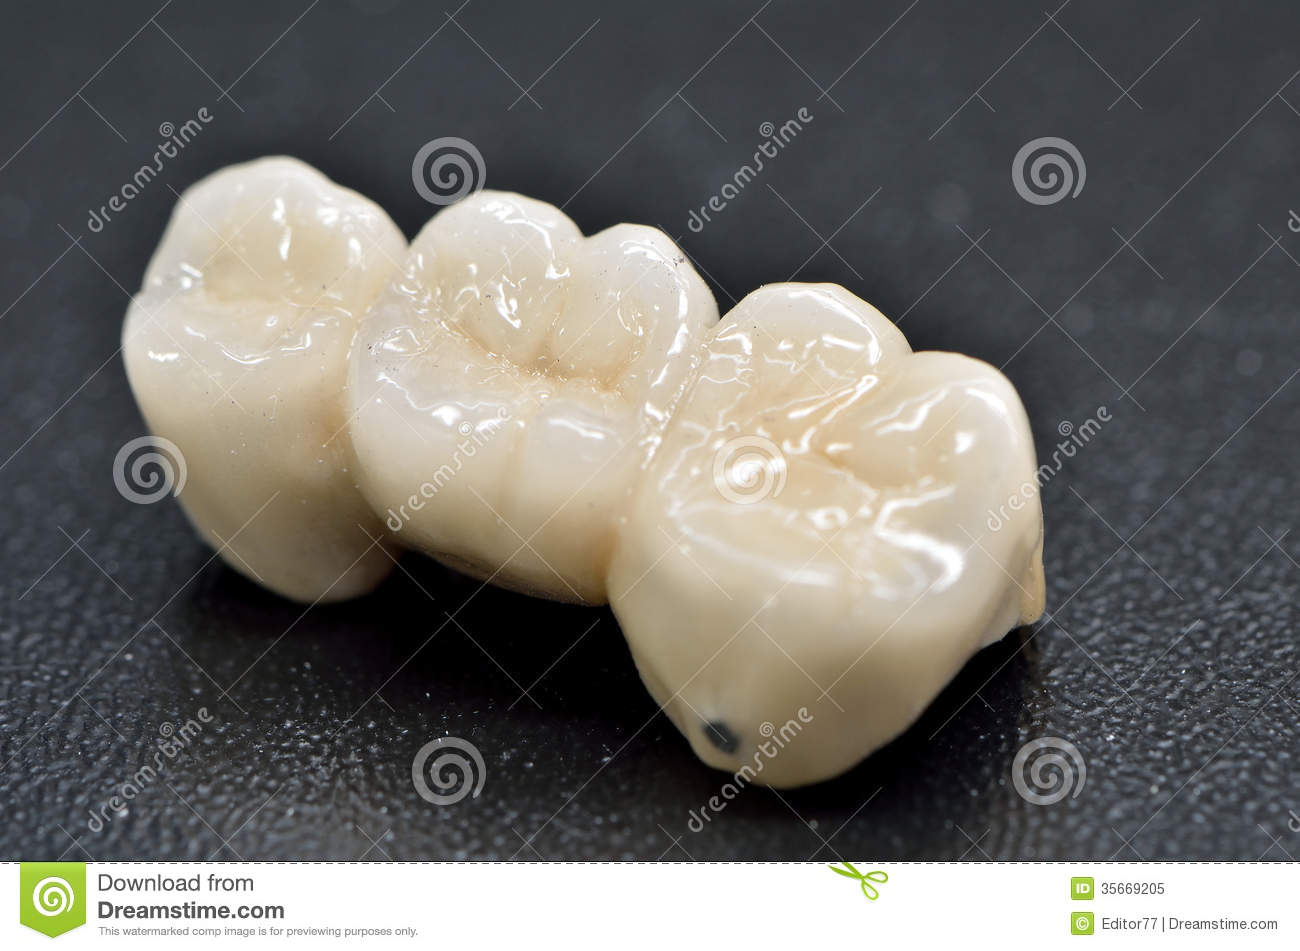 Dents En Porcelaine Couronne Dentaire De Porcelaine Image Stock Image Du Blanc